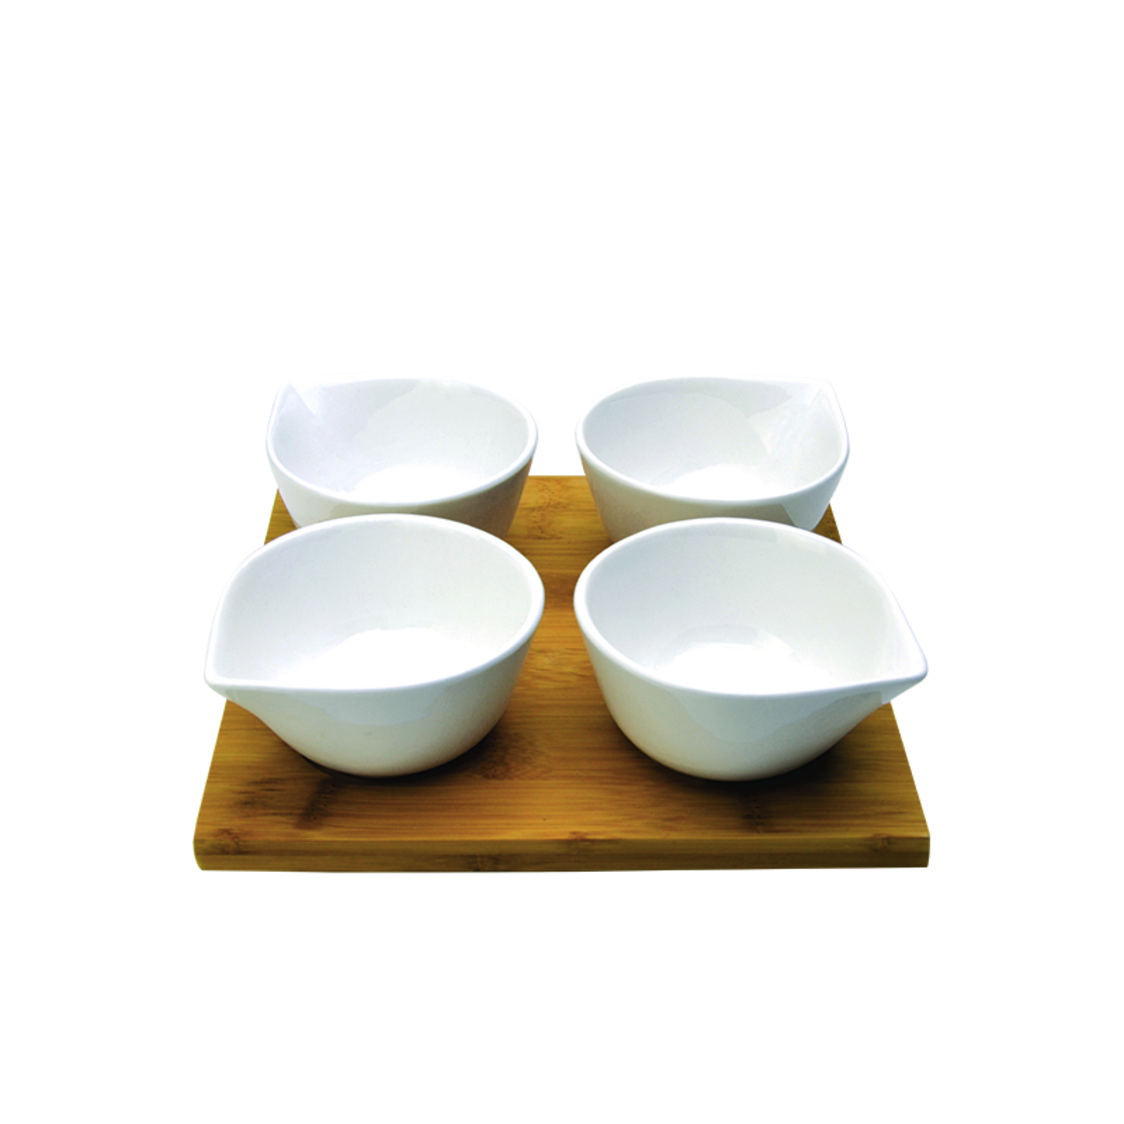 Sparkle 4 Condiment Bowls On Bamboo Tray SR-52